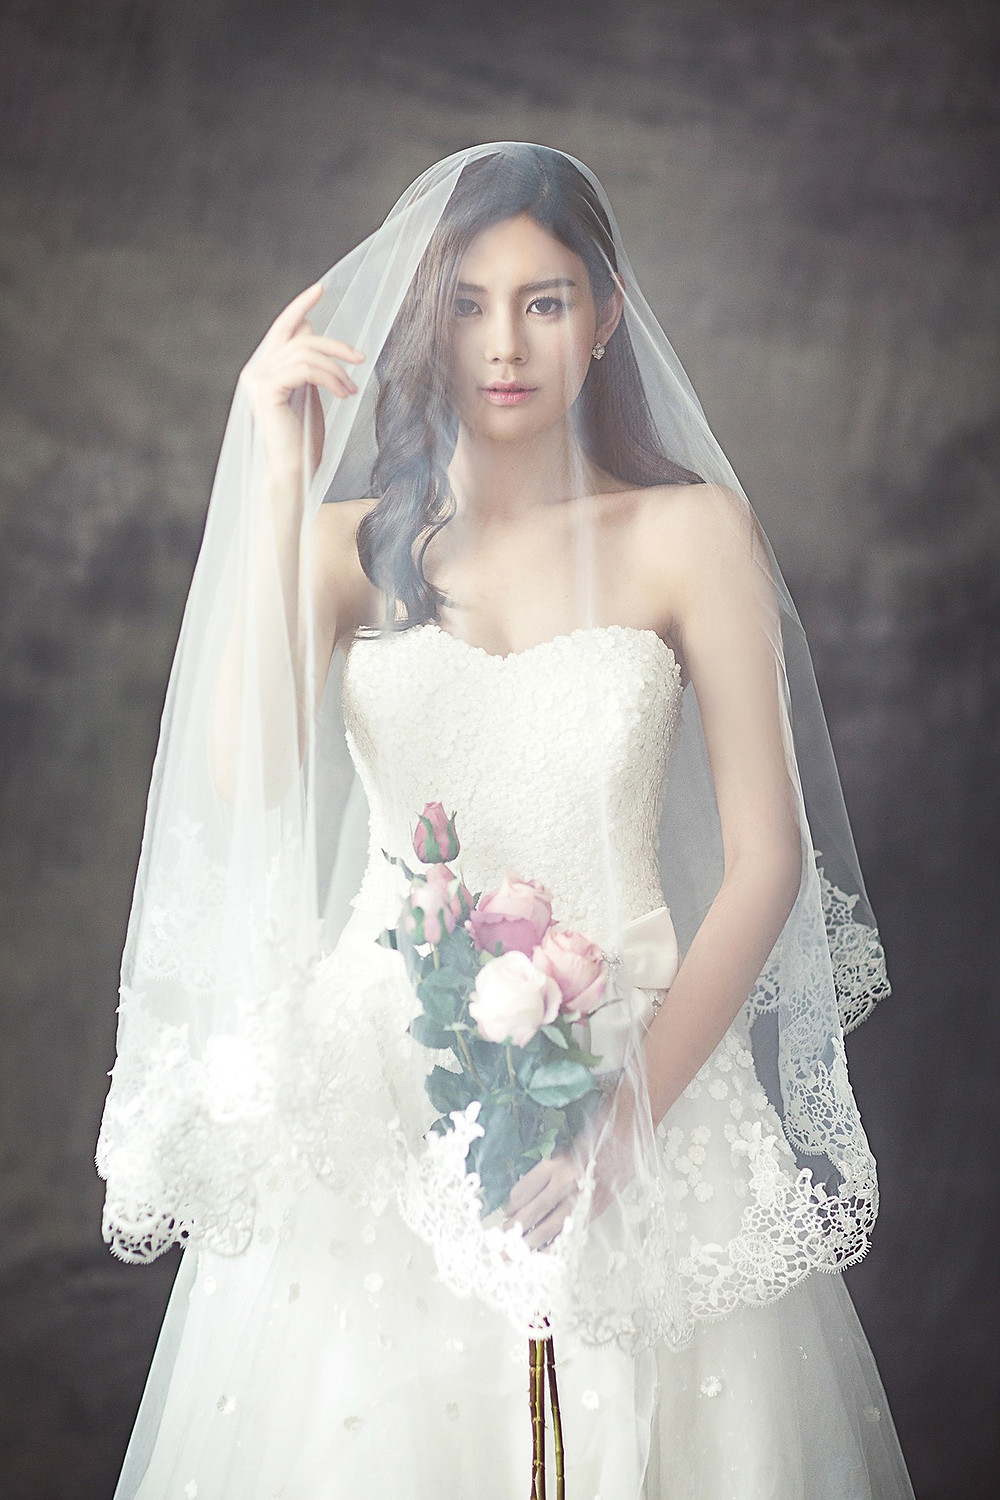 Is Marriage still a thing?, Should I get married in today's world?, marriage isn't romantic anymore, marriage isn't logical, why do people still get married today?